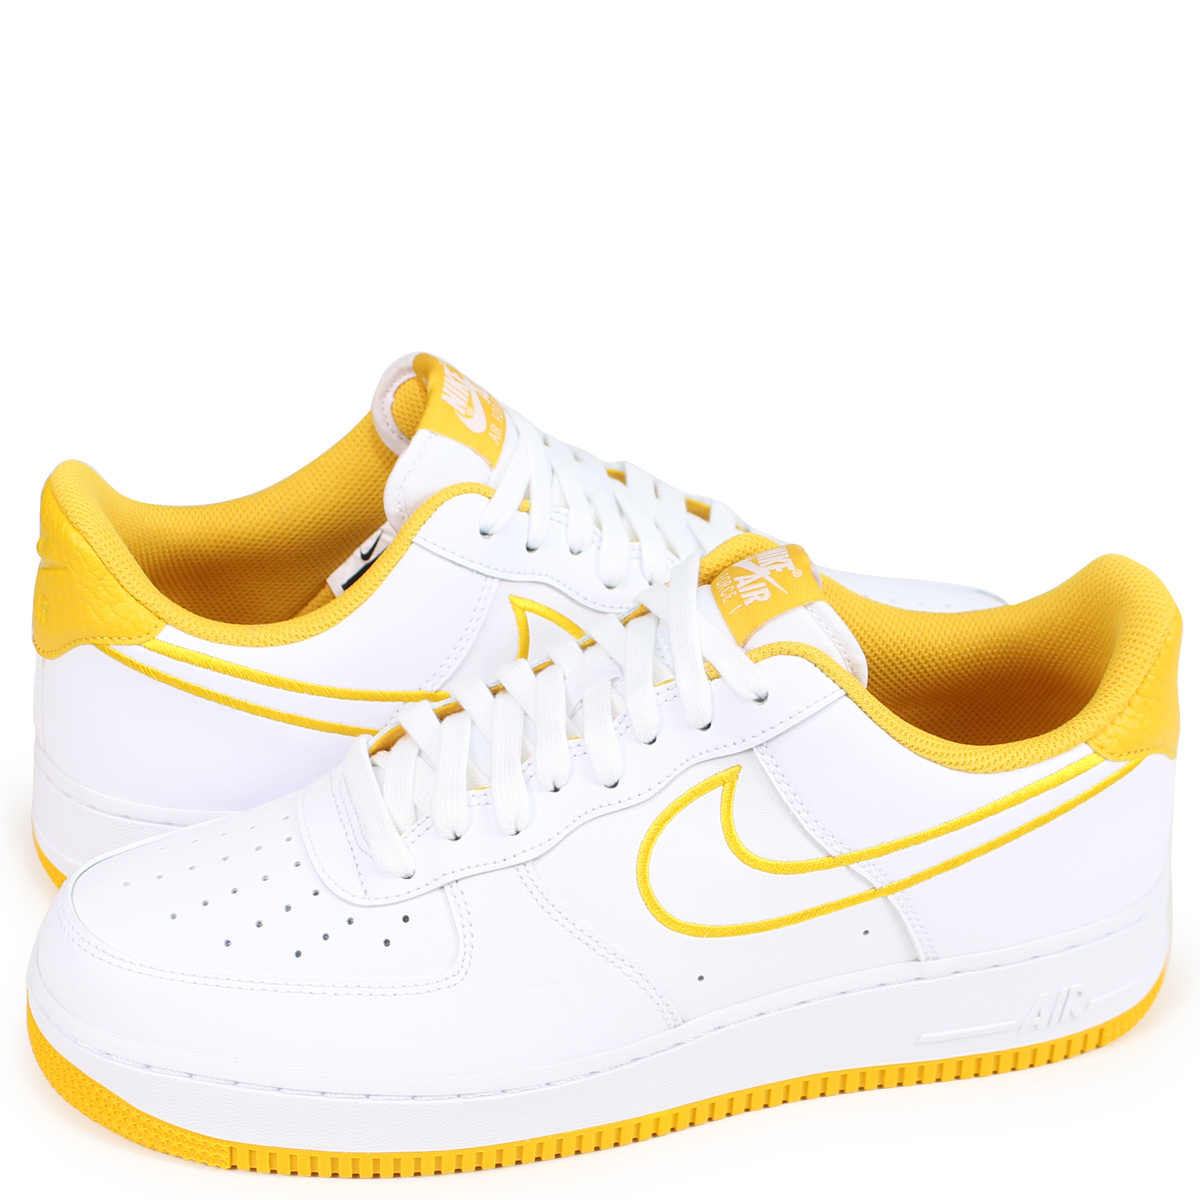 9393ef6ac791f NIKE AIR FORCE 1 07 LEATHER Nike air force 1 sneakers men AJ7280-101 white  [189]